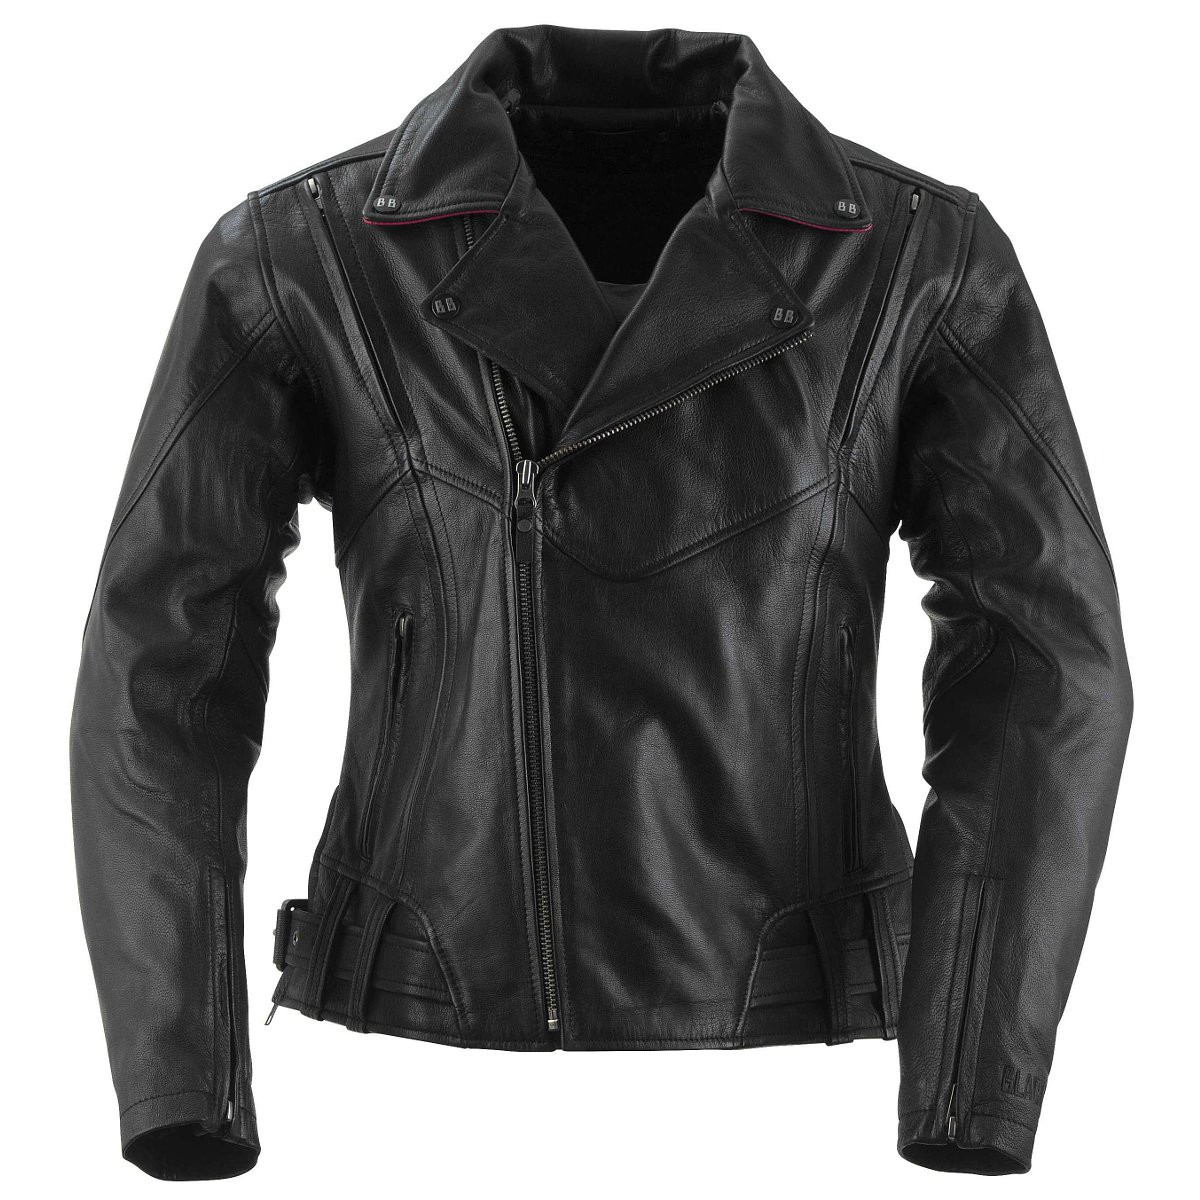 Leather jacket brand names